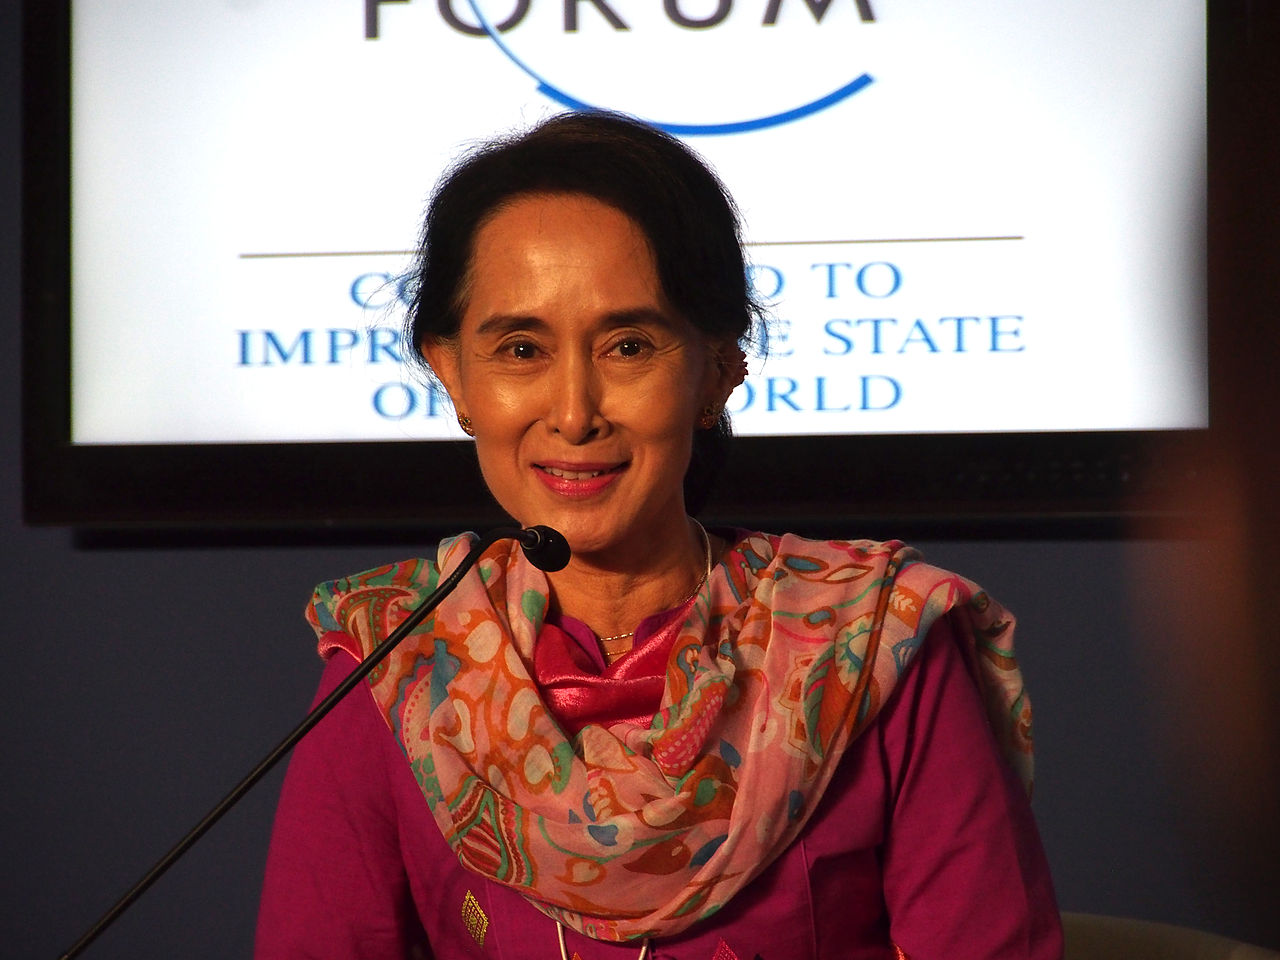 aung san suu kyi quotes that prove you don t need to be fierce image source